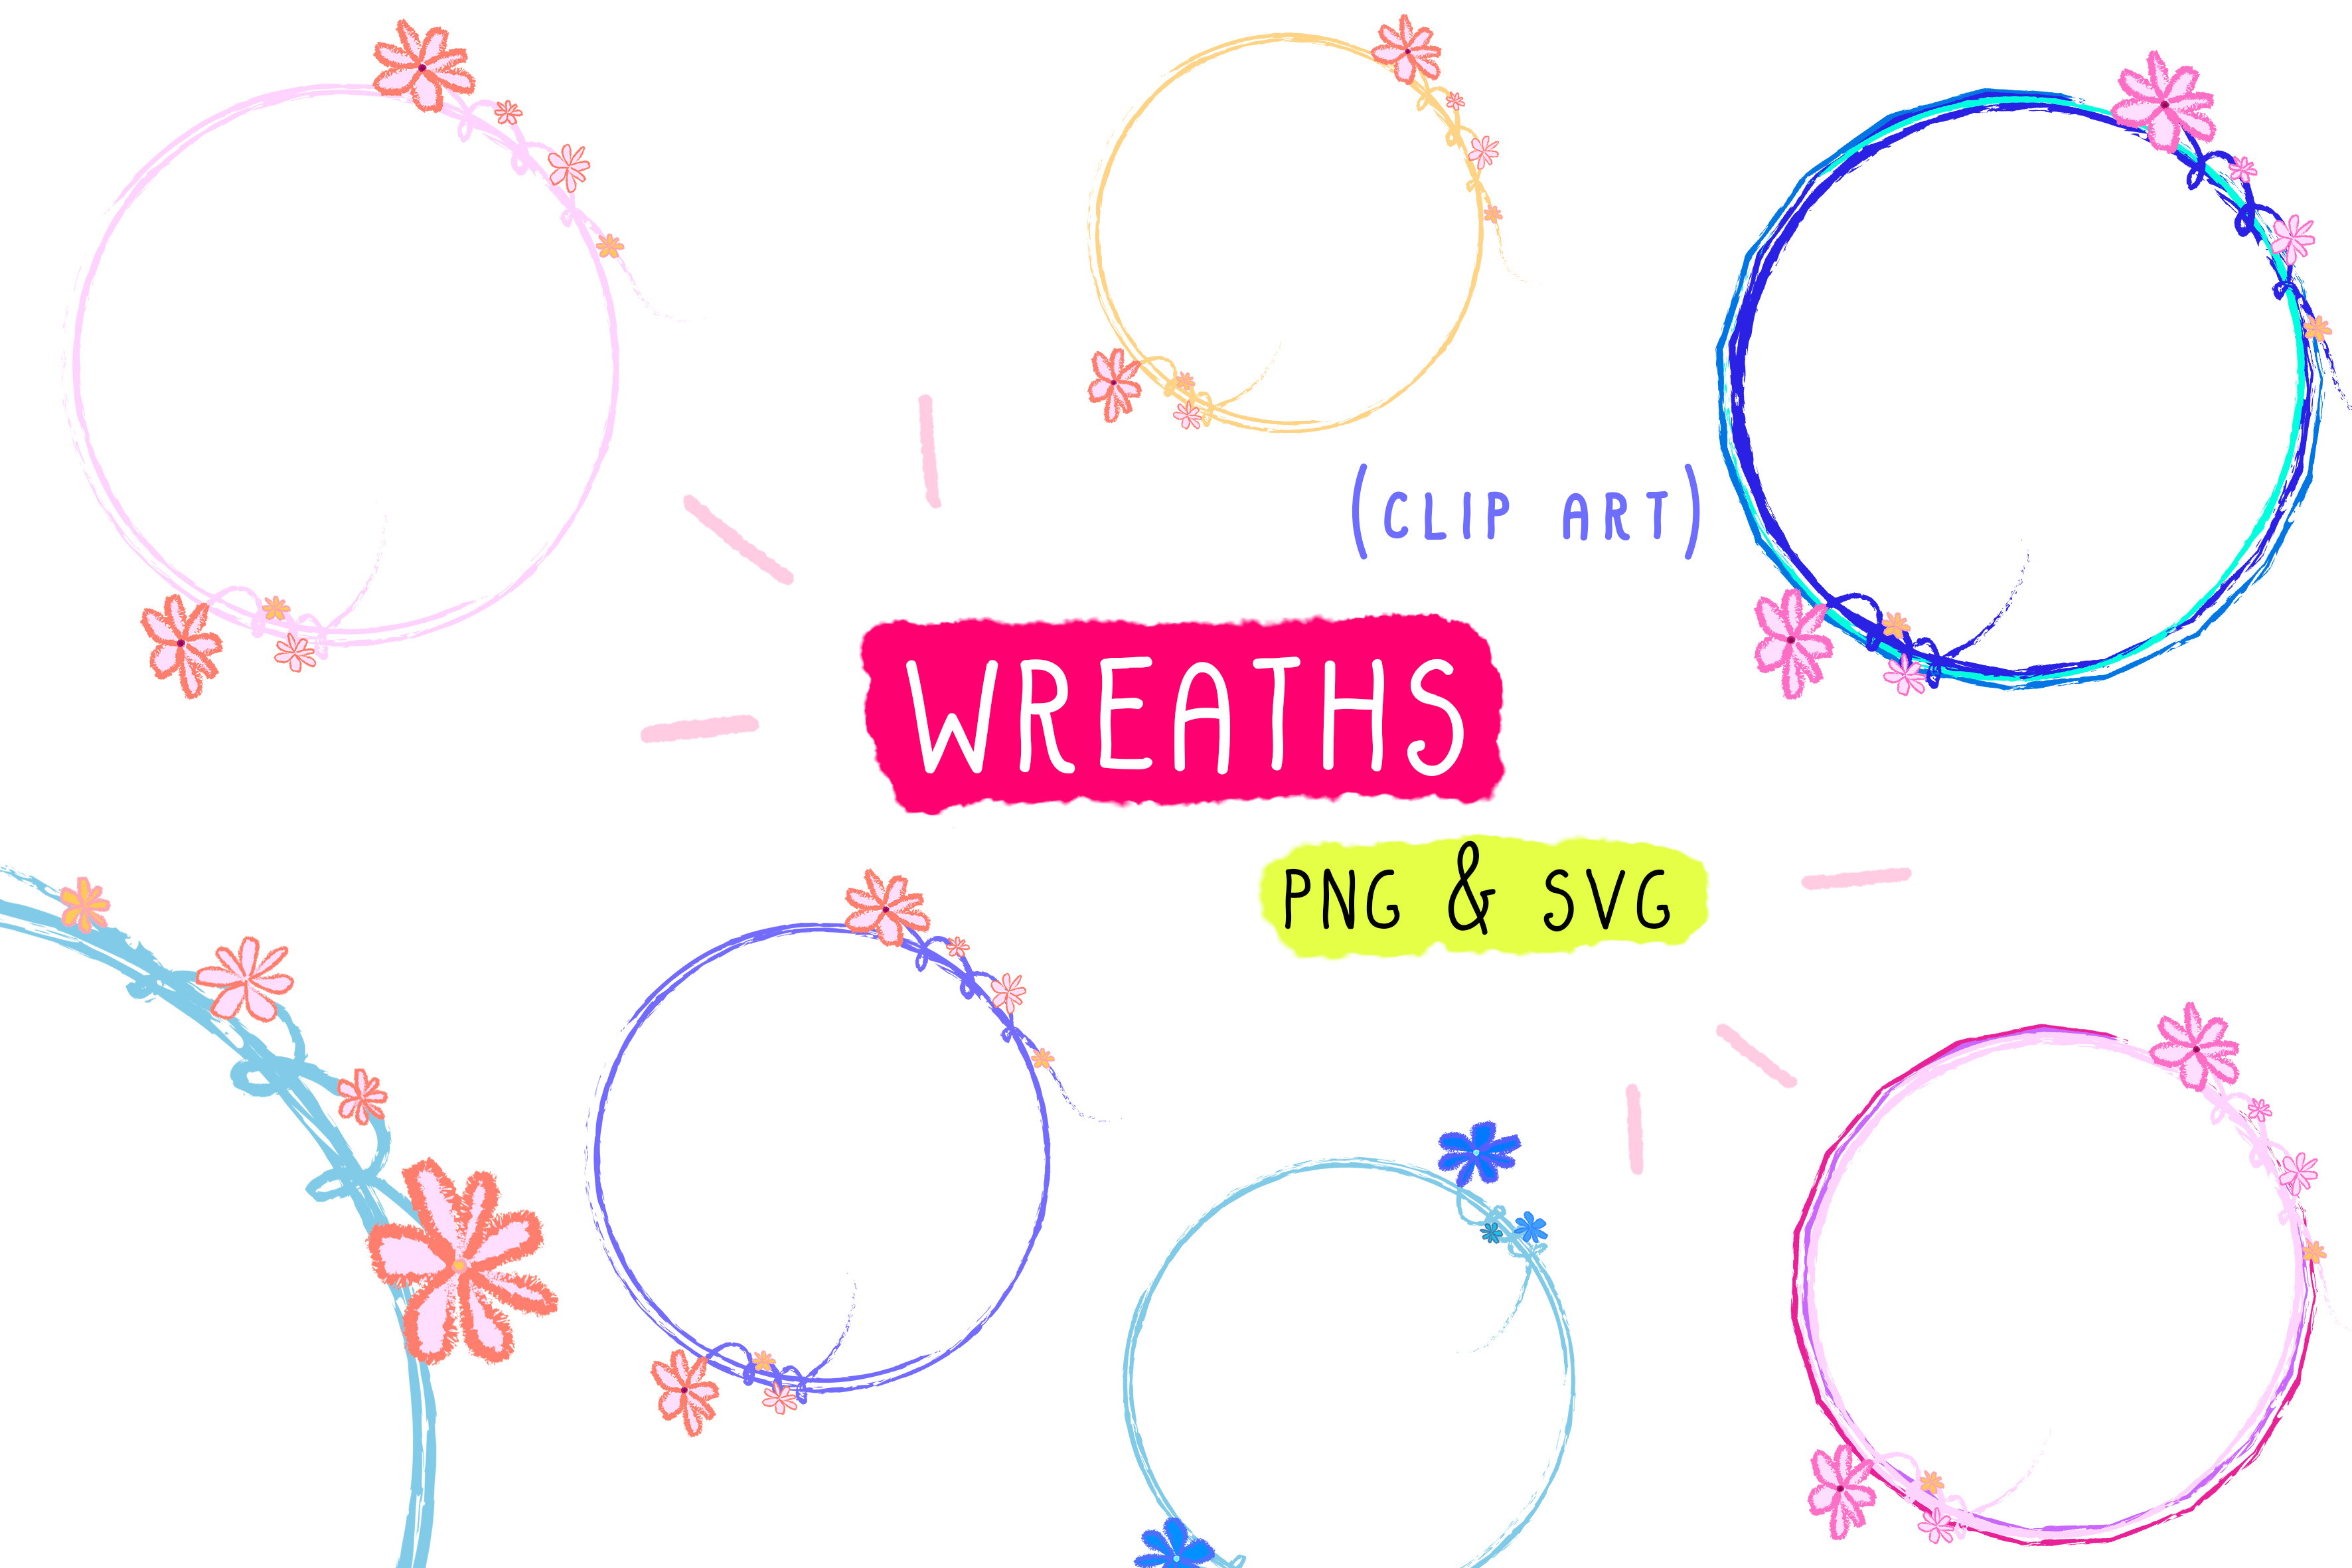 Download Free Wreath Clip Art Frame Graphic By Inkclouddesign Creative Fabrica for Cricut Explore, Silhouette and other cutting machines.